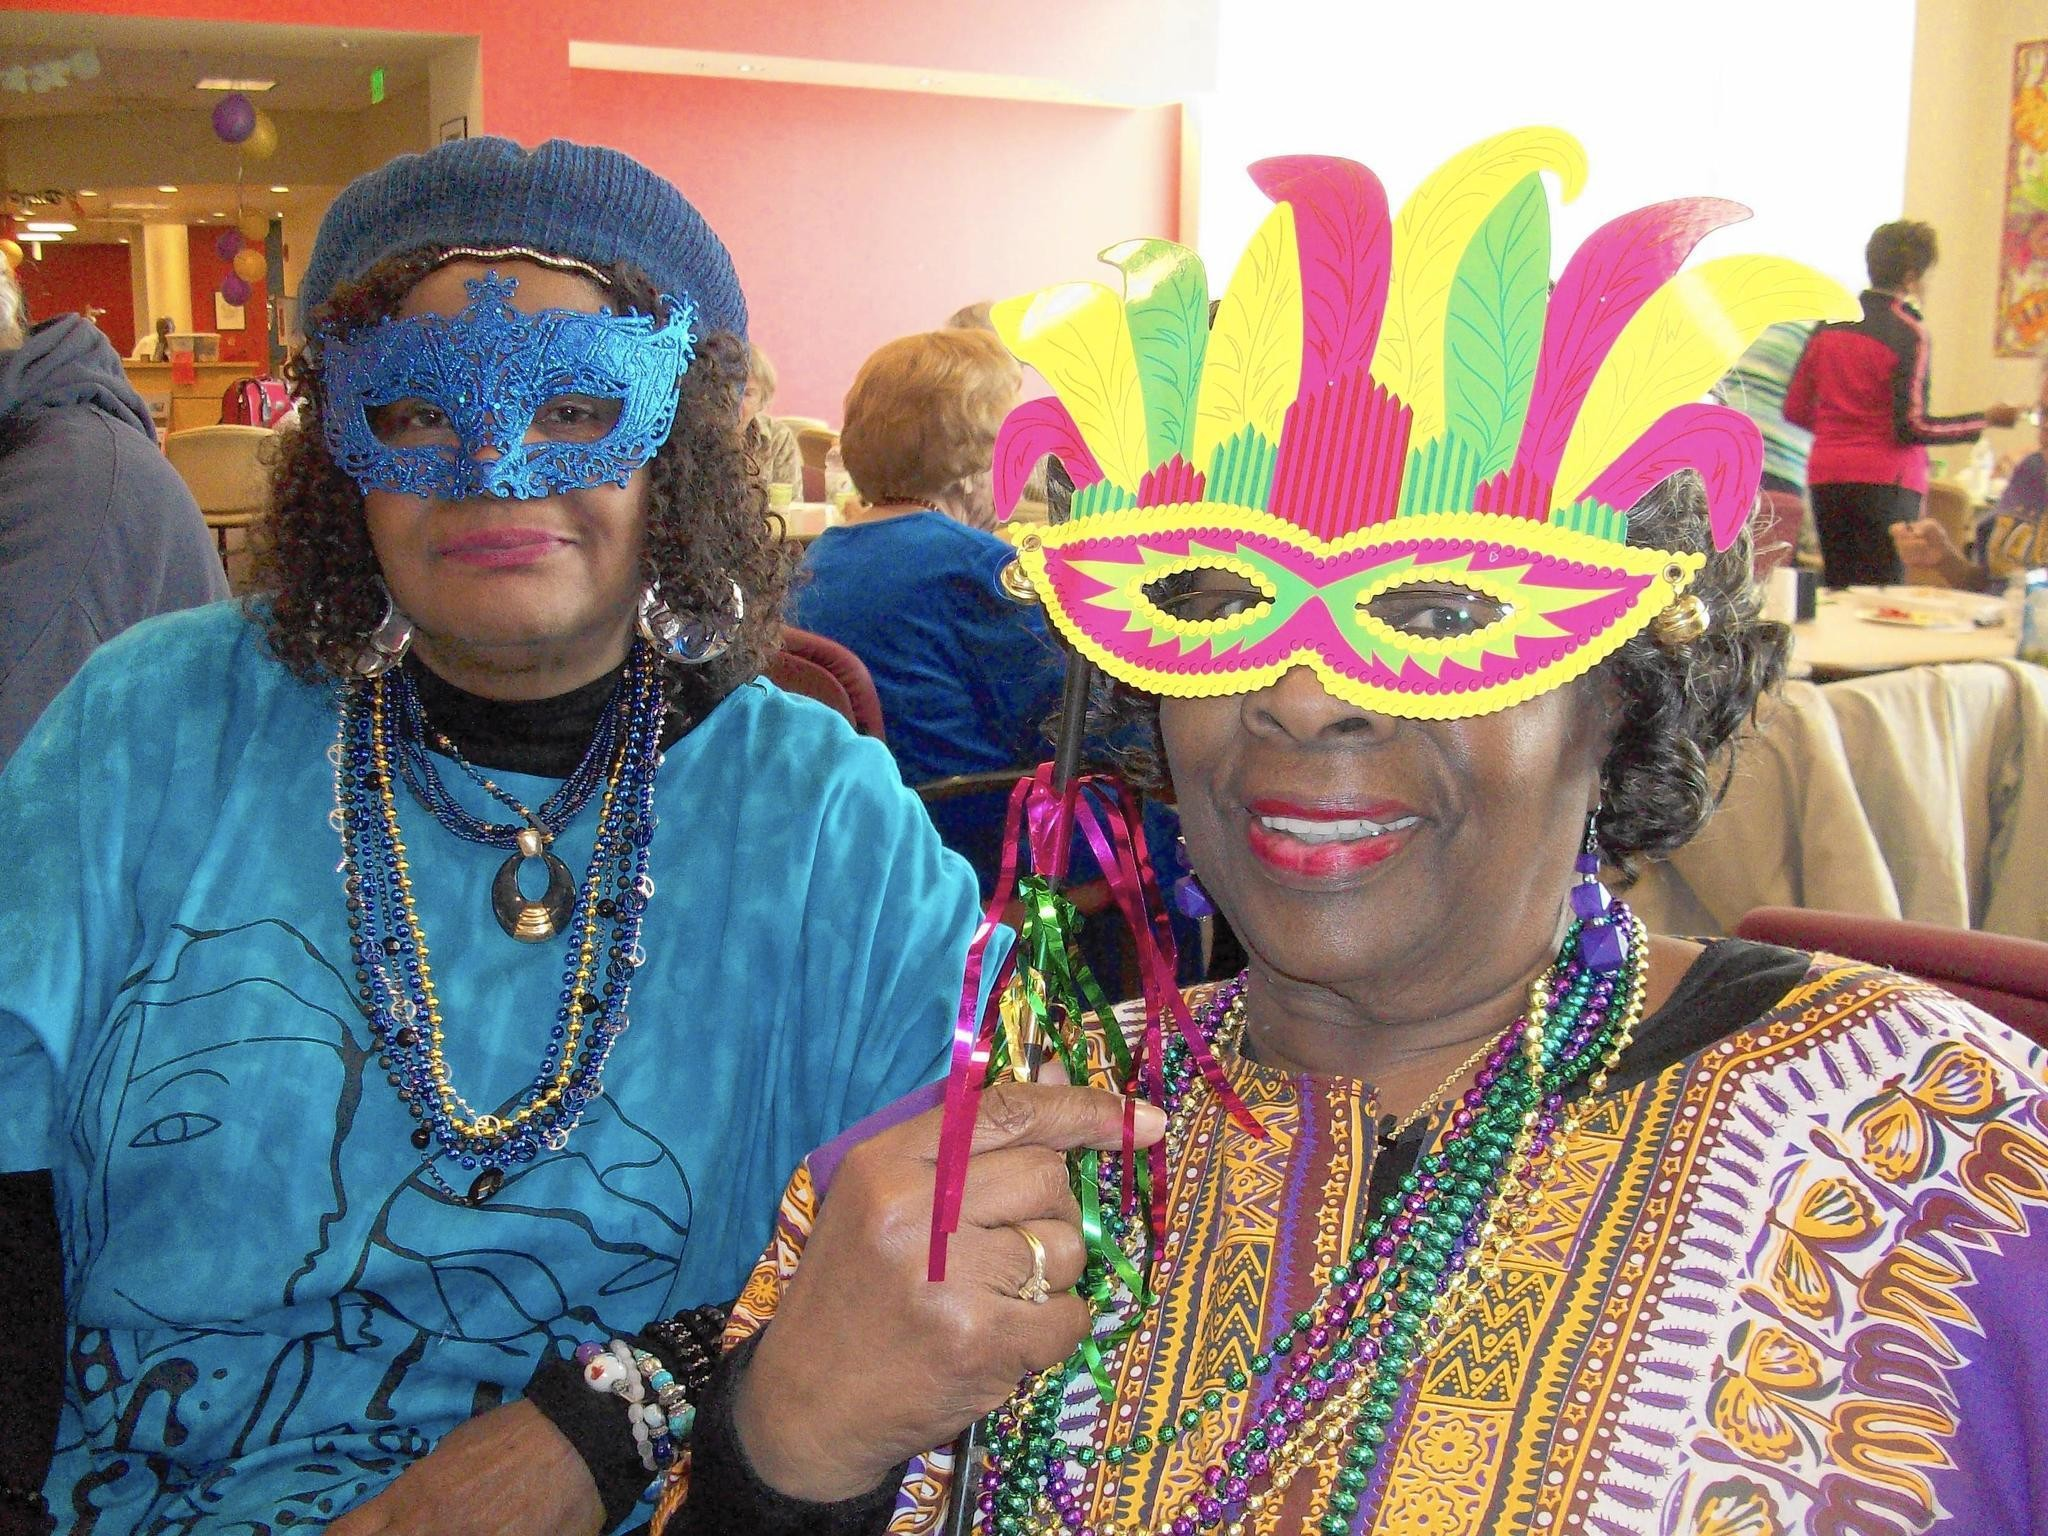 2048x1536 My Time: Mardi Gras fun at Annapolis Senior Activity Center - Capital  Gazette